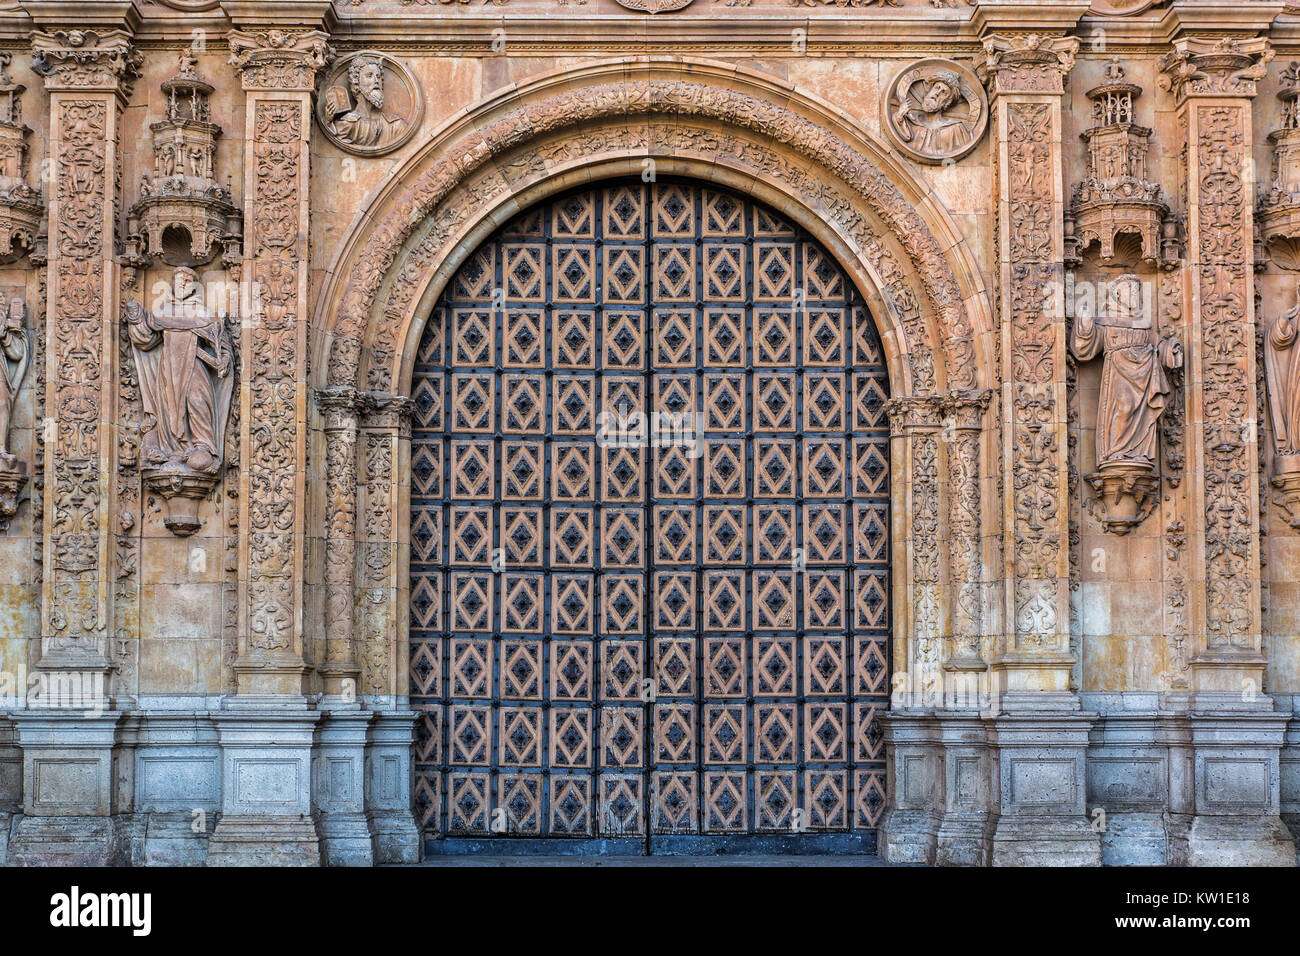 Entry into the convent of San Esteban in Salamanca. Spain. - Stock Image